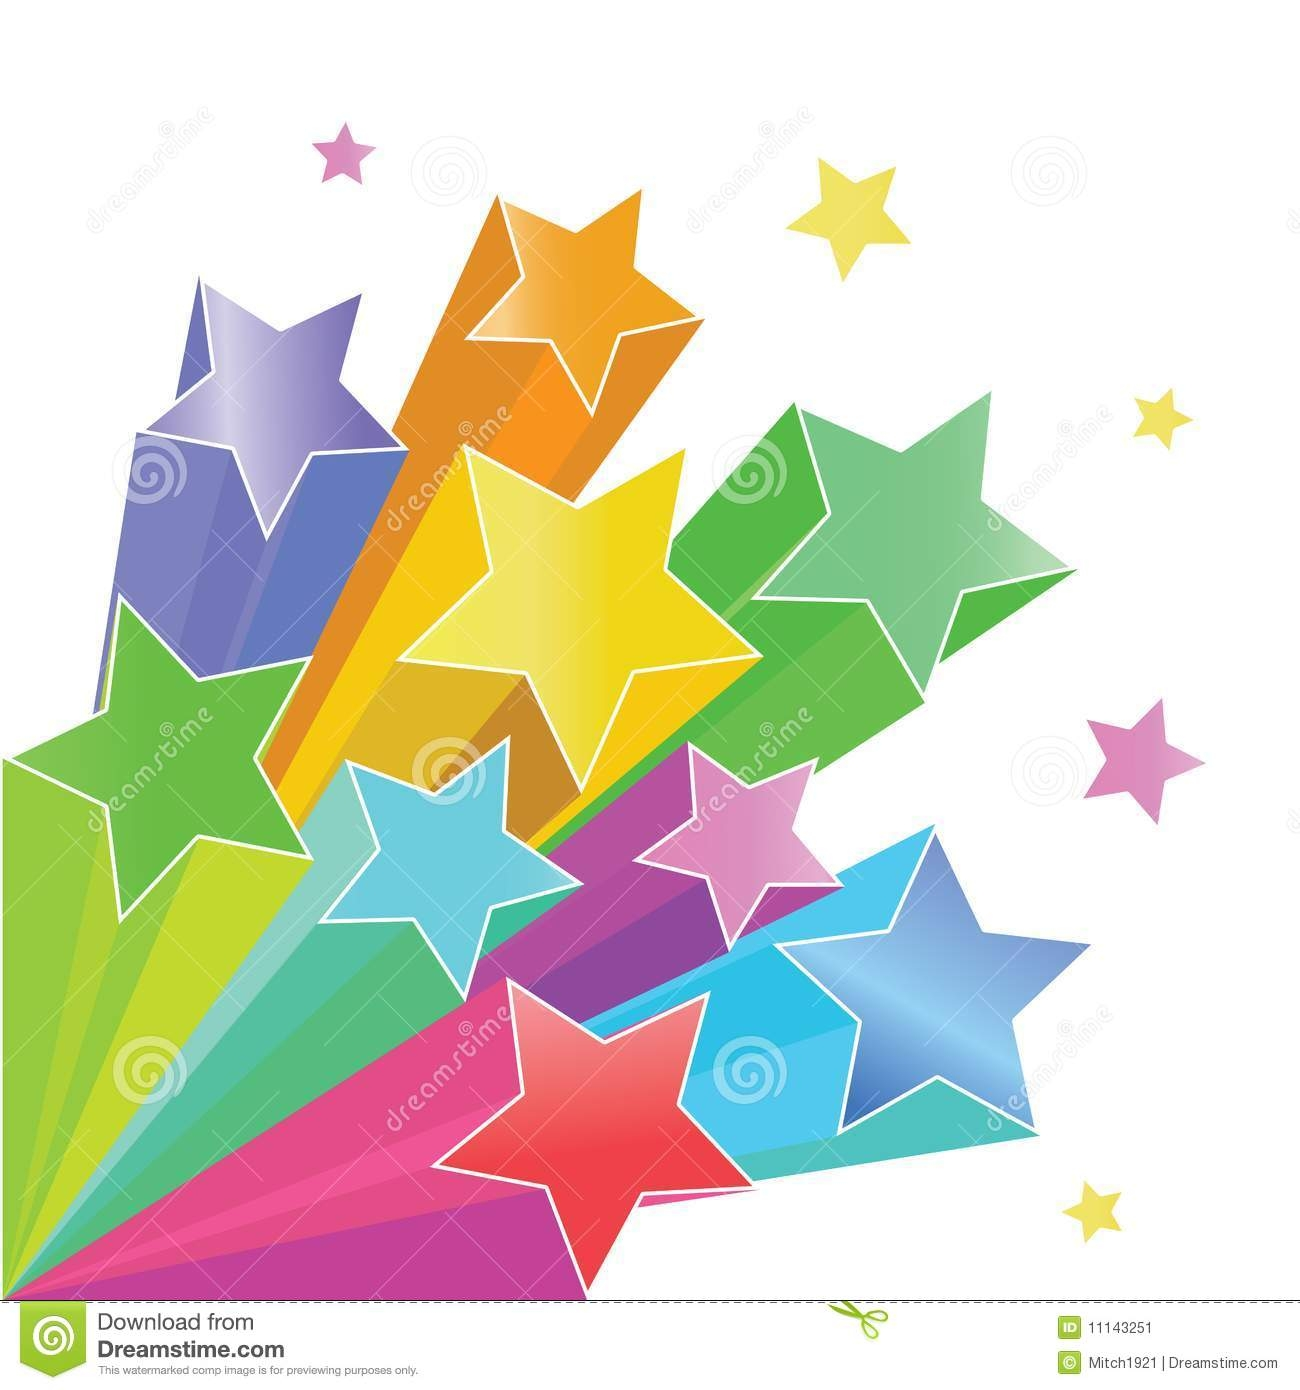 Shooting Star clipart outer space Rainbow Shooting Clipart Shooting Rainbow